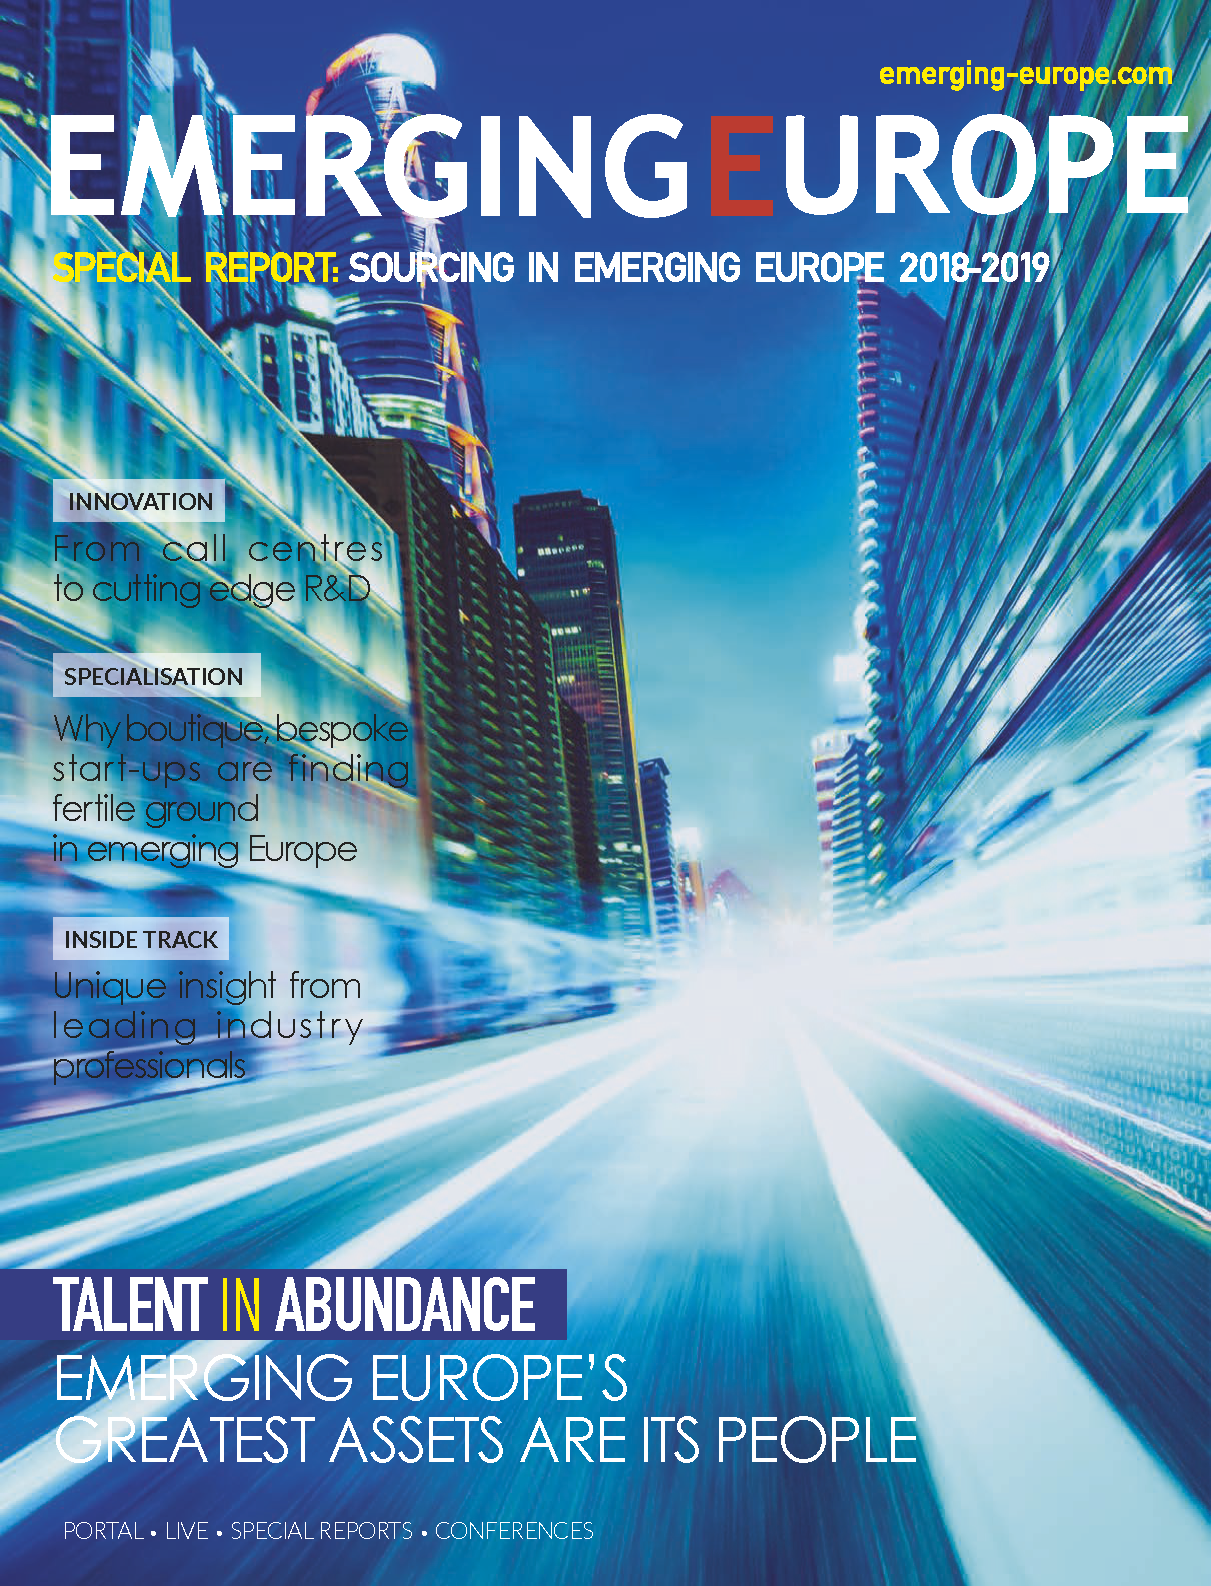 Emerging Europe Sourcing Special Report